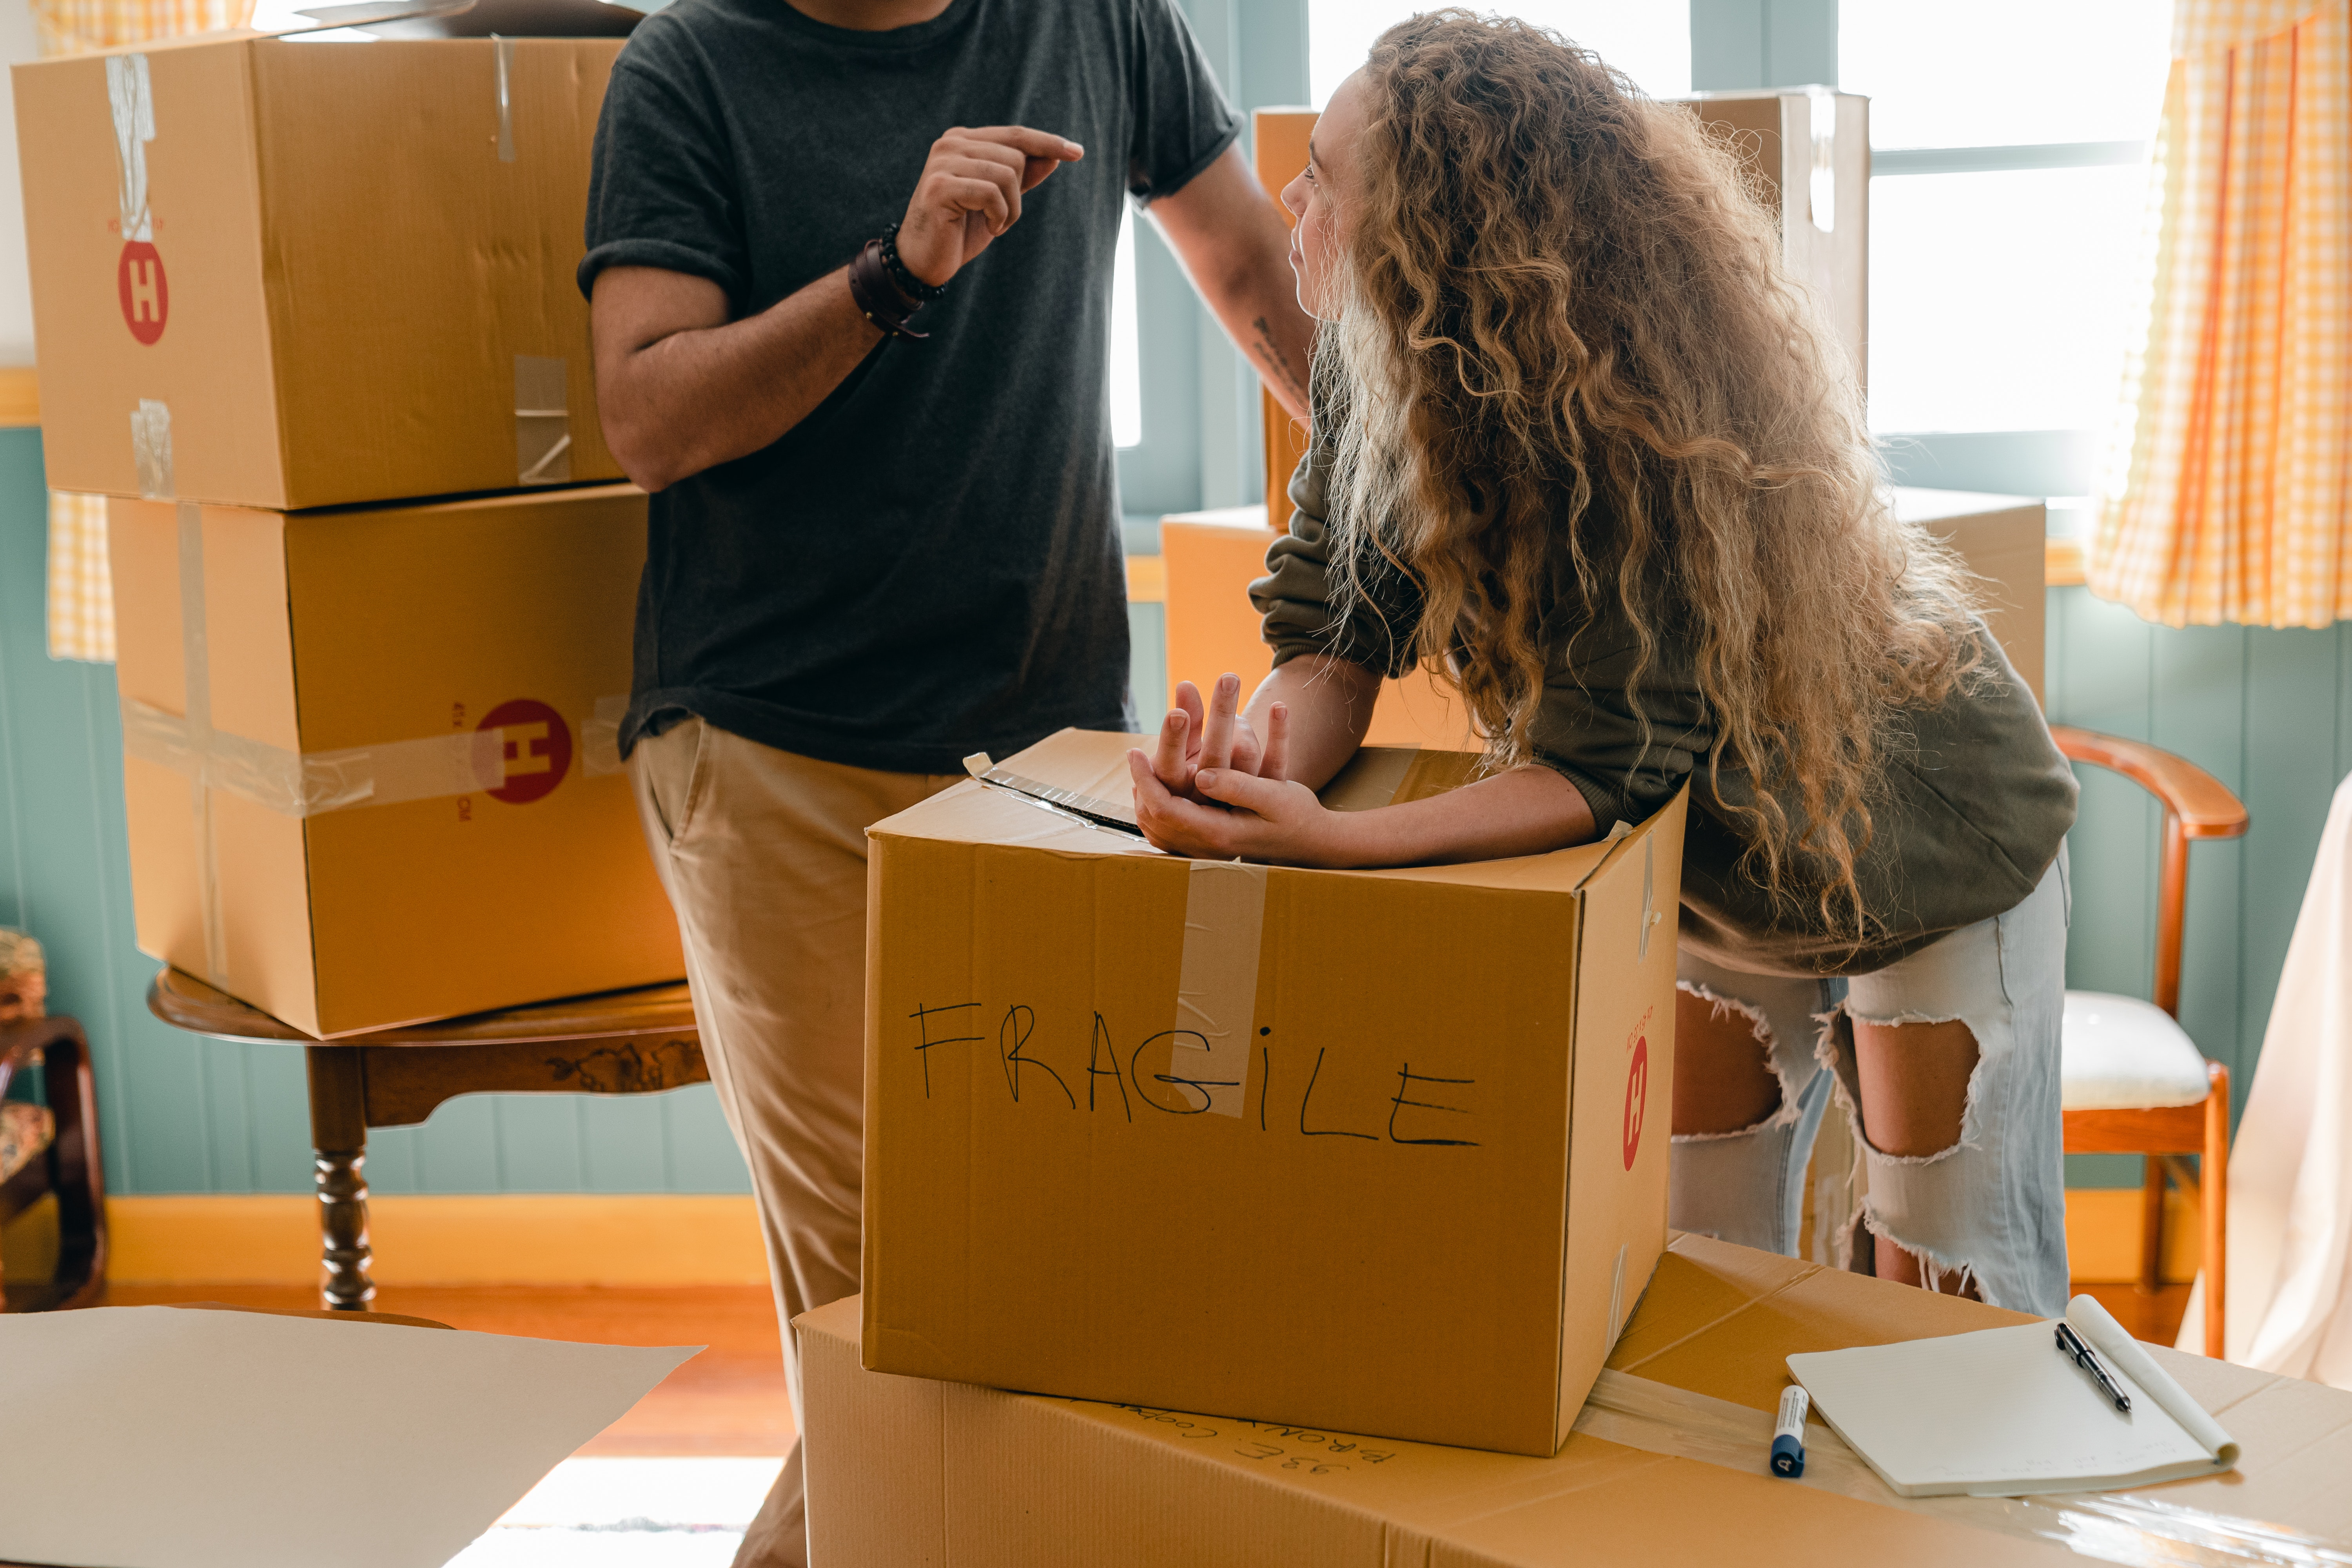 woman-and-crop-boyfriend-near-different-boxes-for-moving-4246205